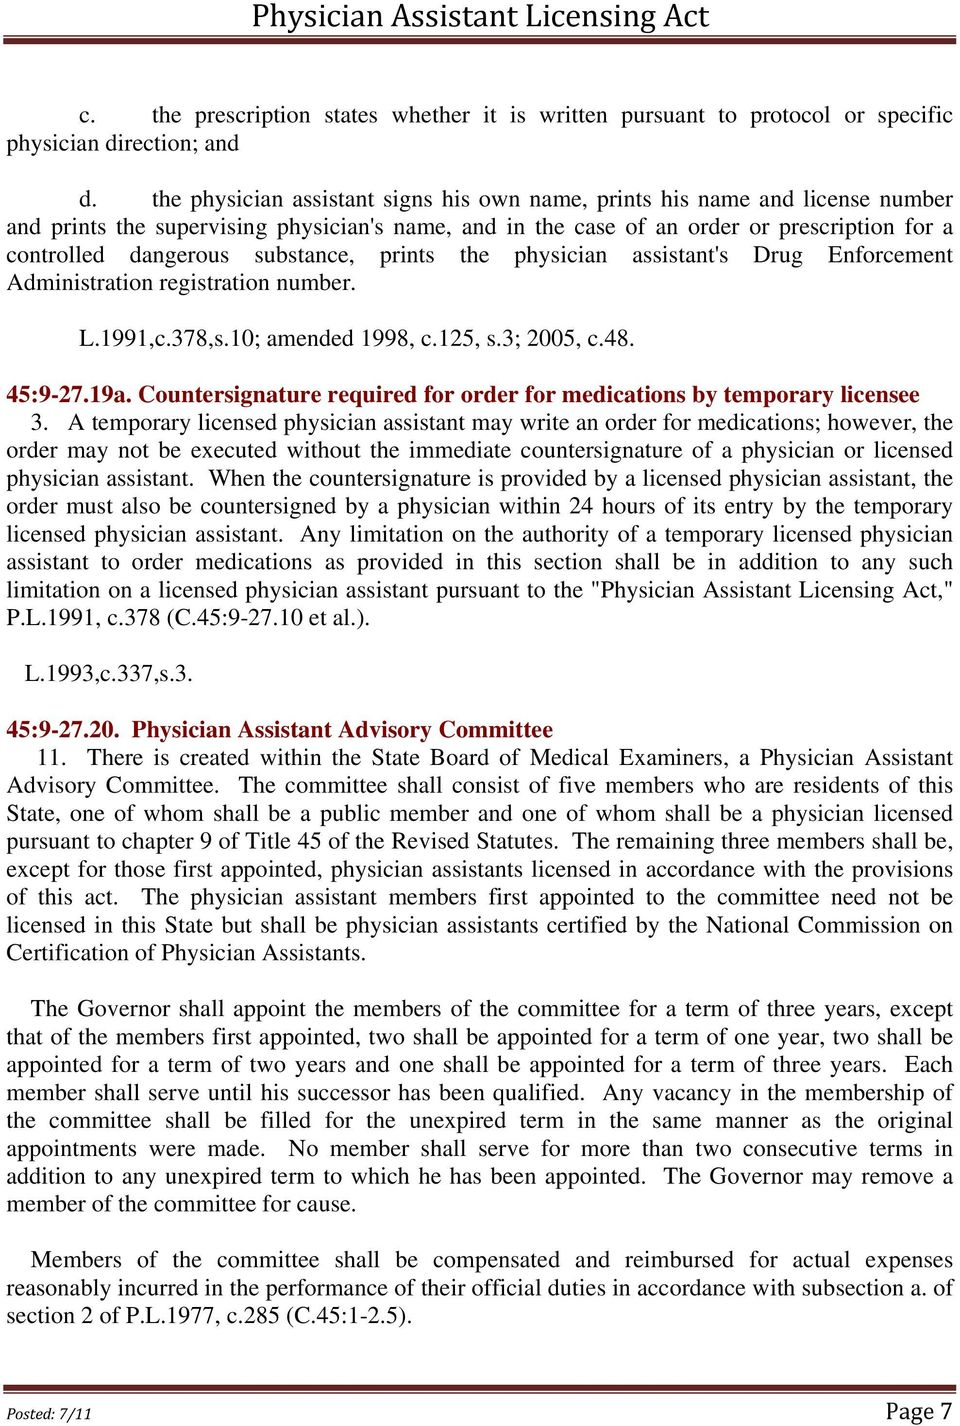 substance, prints the physician assistant's Drug Enforcement Administration registration number. L.1991,c.378,s.10; amended 1998, c.125, s.3; 2005, c.48. 45:9-27.19a.